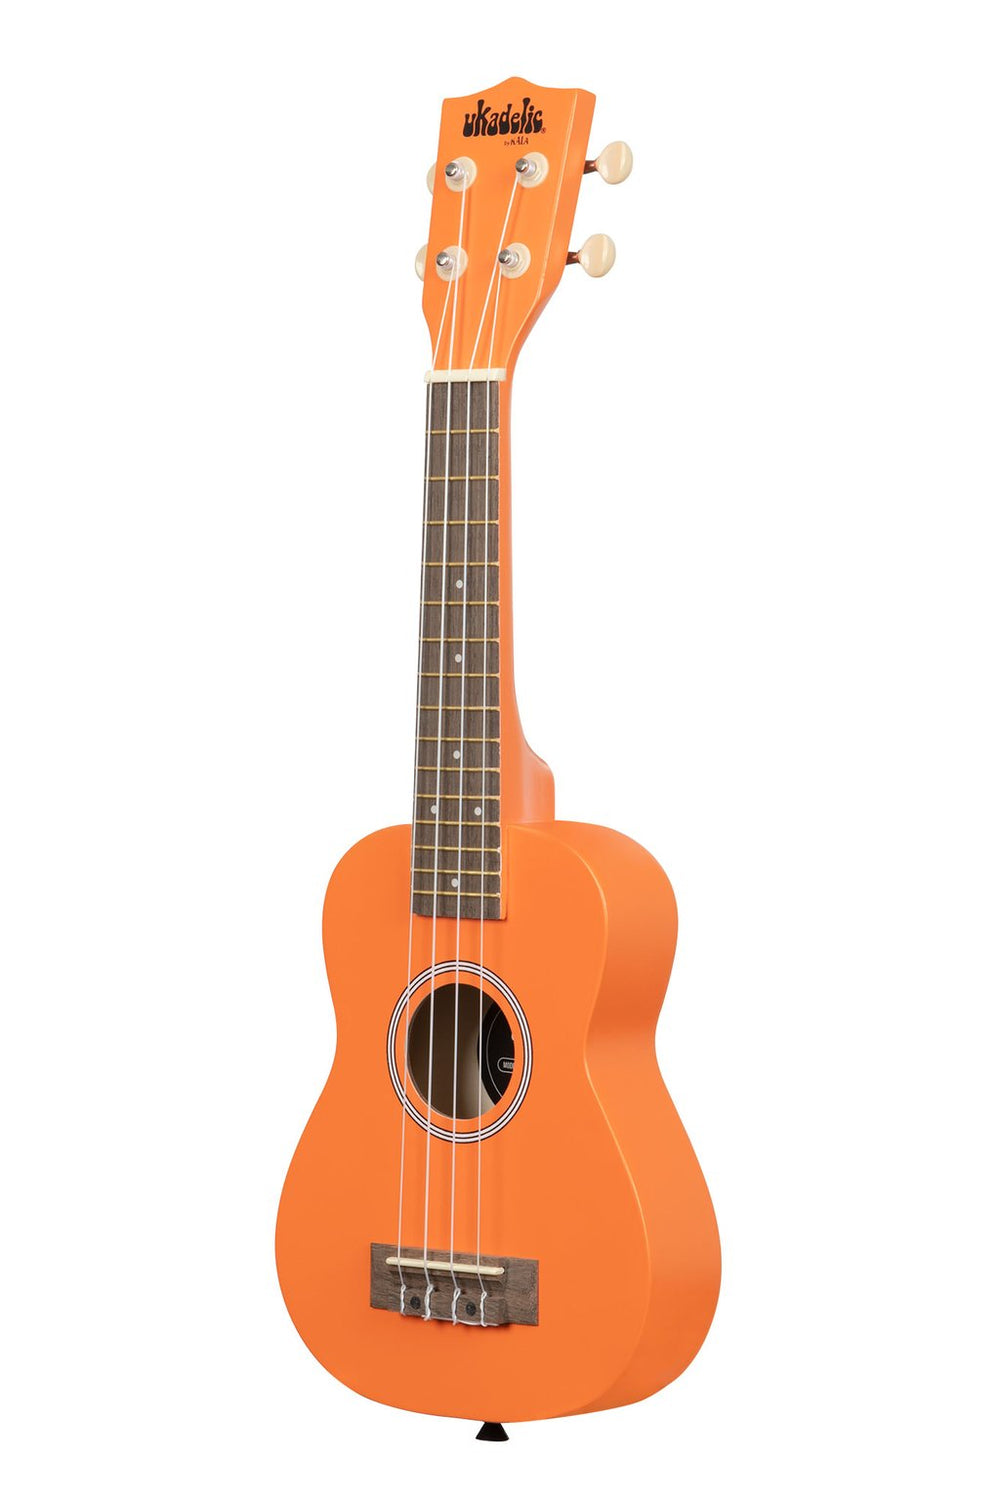 KALA Ukadelic Orange Marmalade Soprano Ukulele Pack with Tote Bag UK-MARMALADE